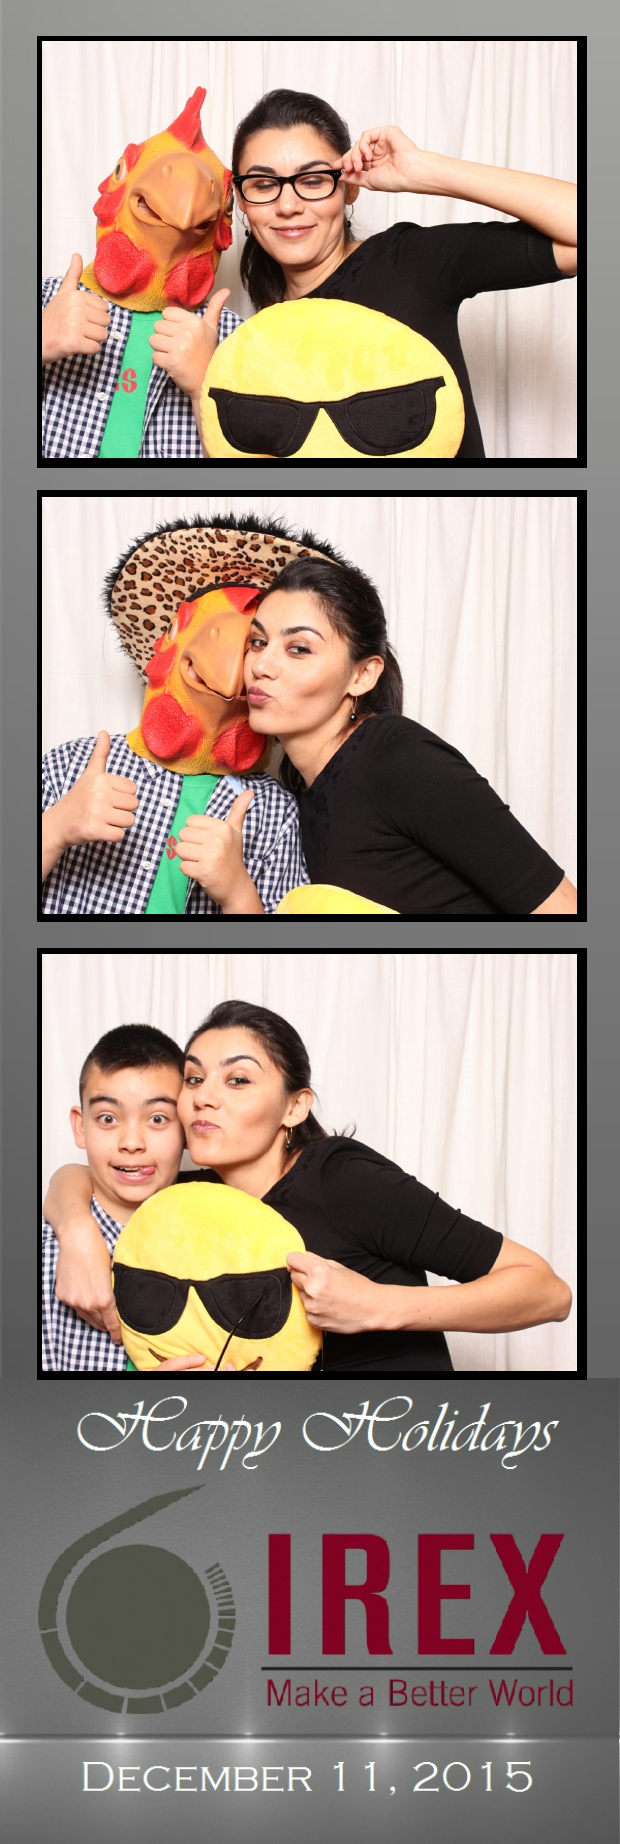 Guest House Events Photo Booth Strips IREX (67).jpg